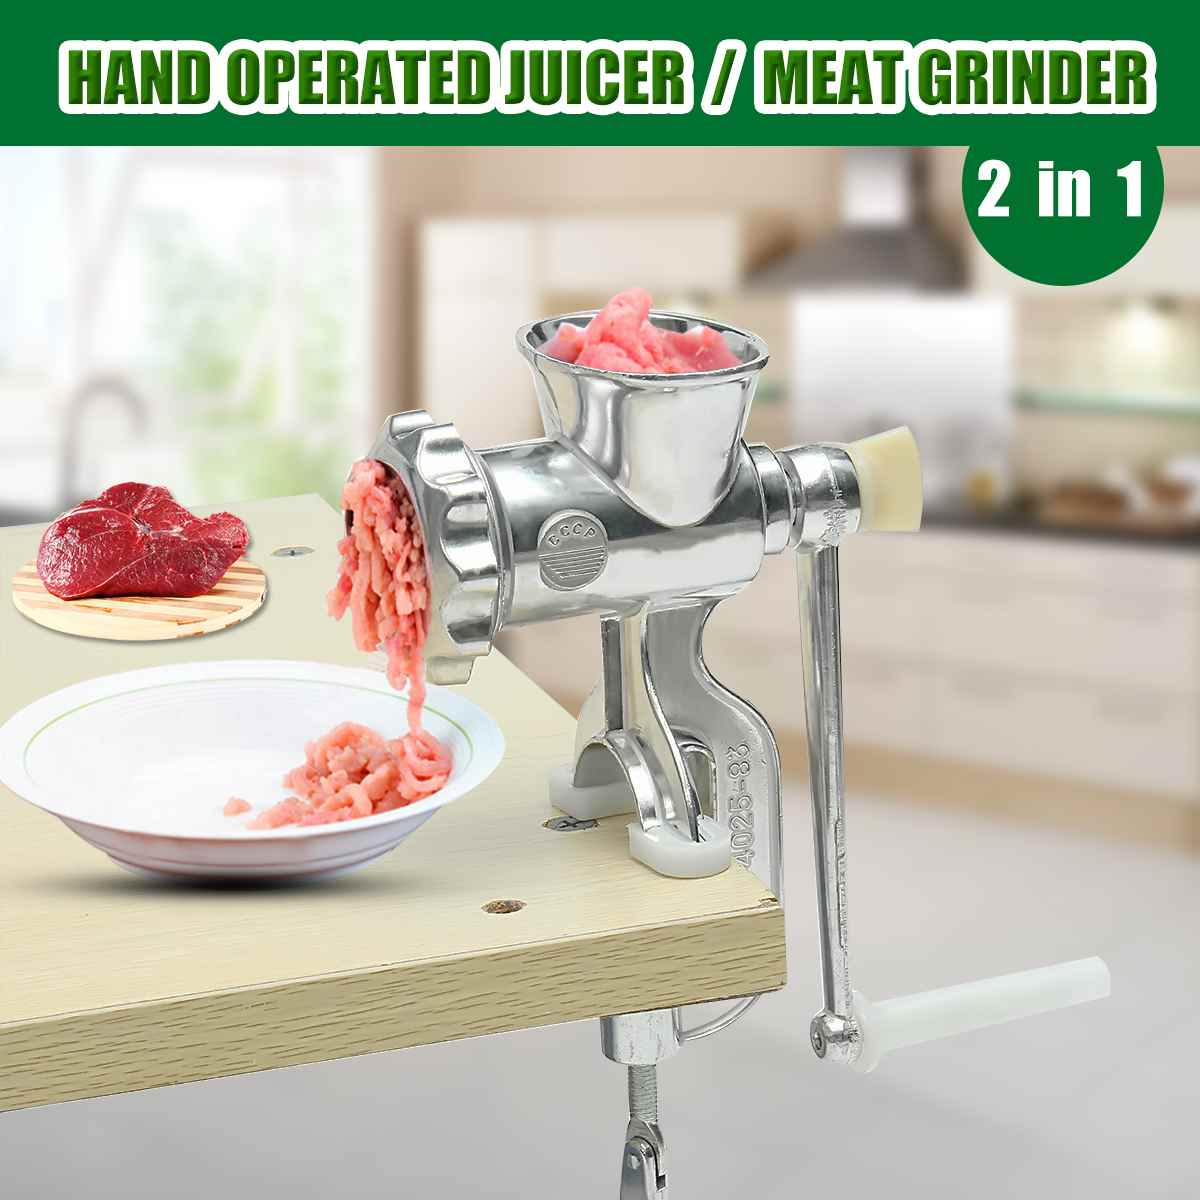 2 In 1 Household Hand Operated Juicer Food Meat Grinder Manual Juice Squeezer Press Extractor Meat Fruit Vegetable Wheatgrass